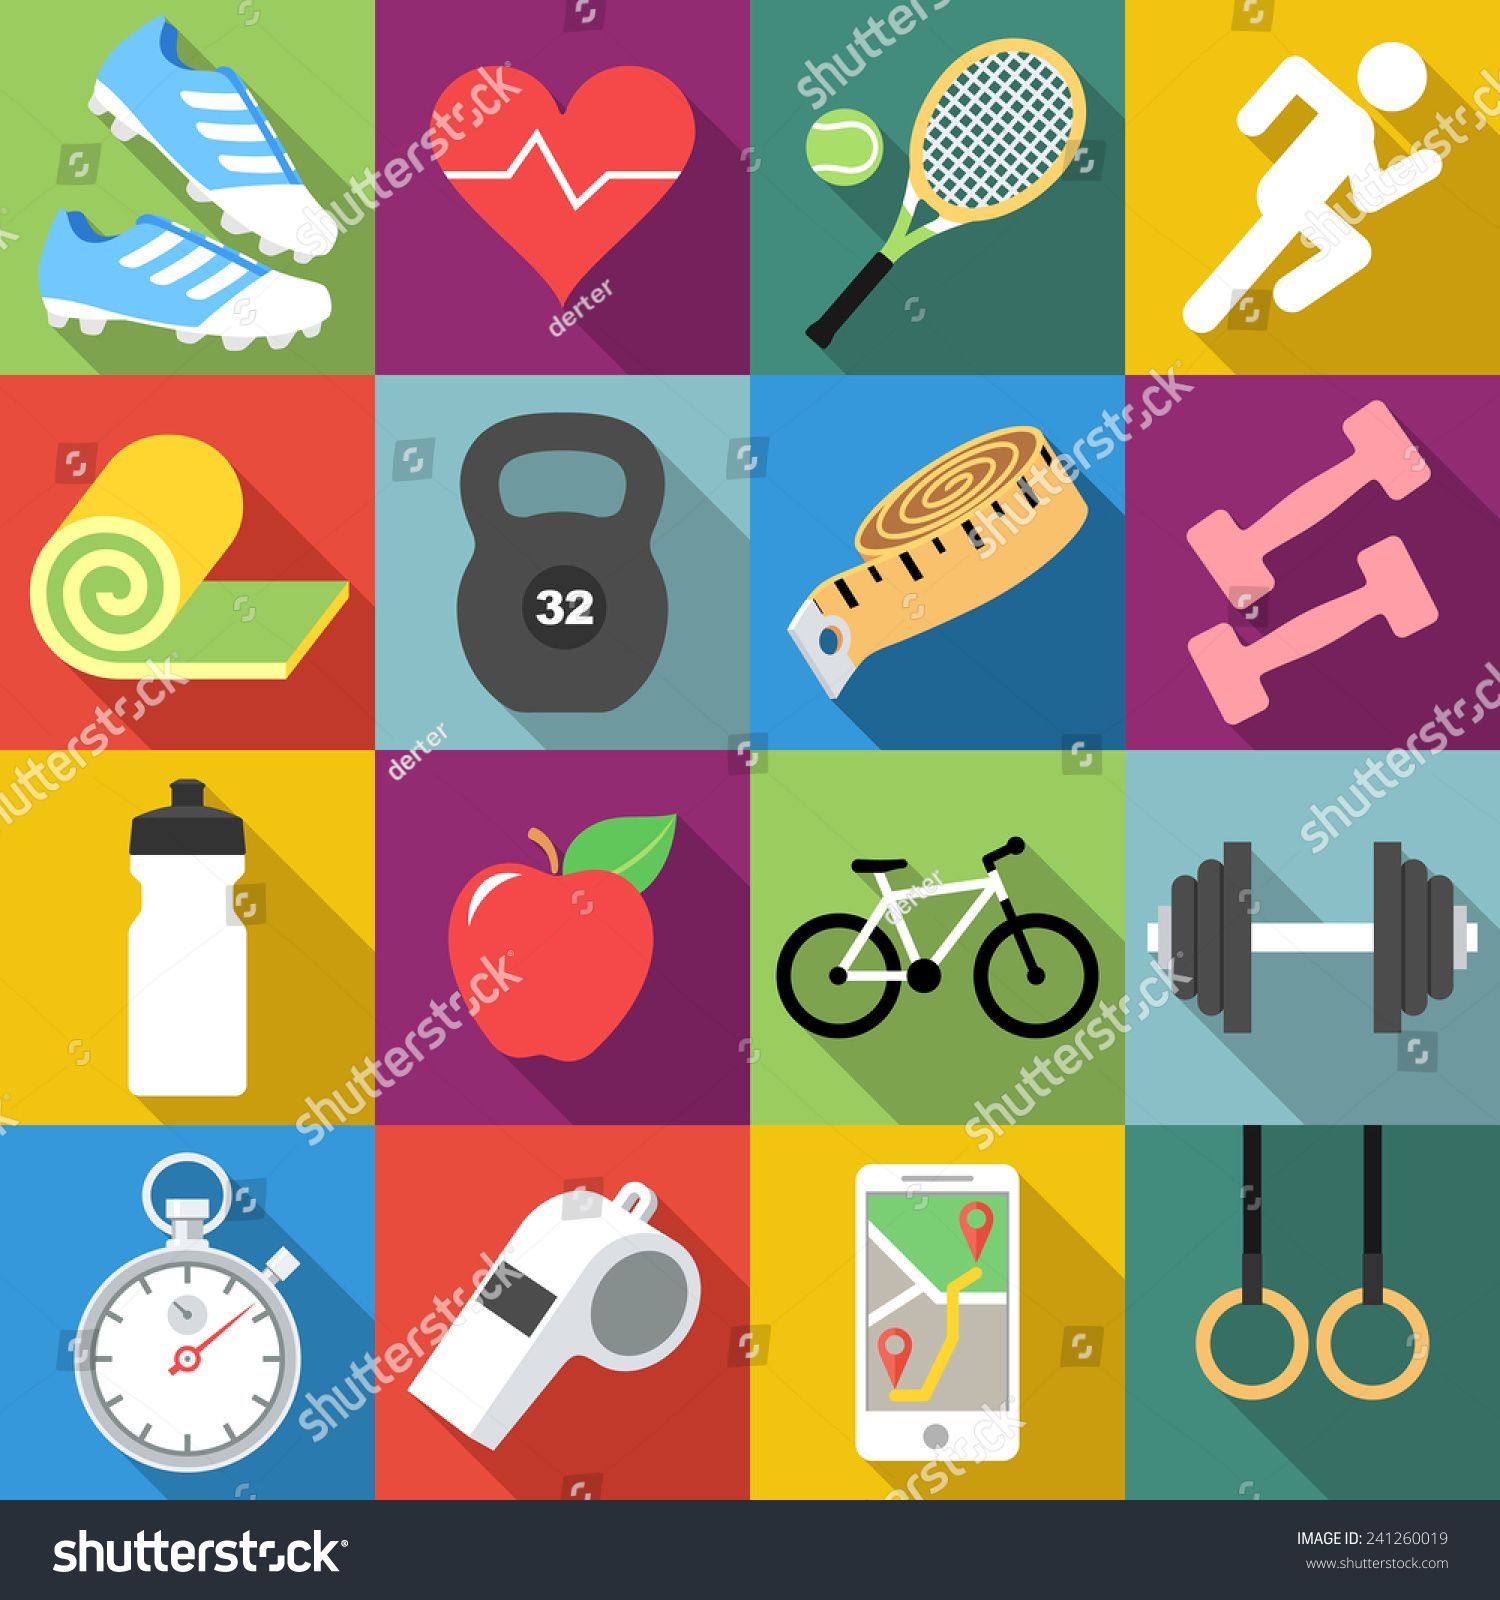 Set of fitness icons in flat design with long shadows #Sponsored , #Ad, #icons#fitness#Set#flat